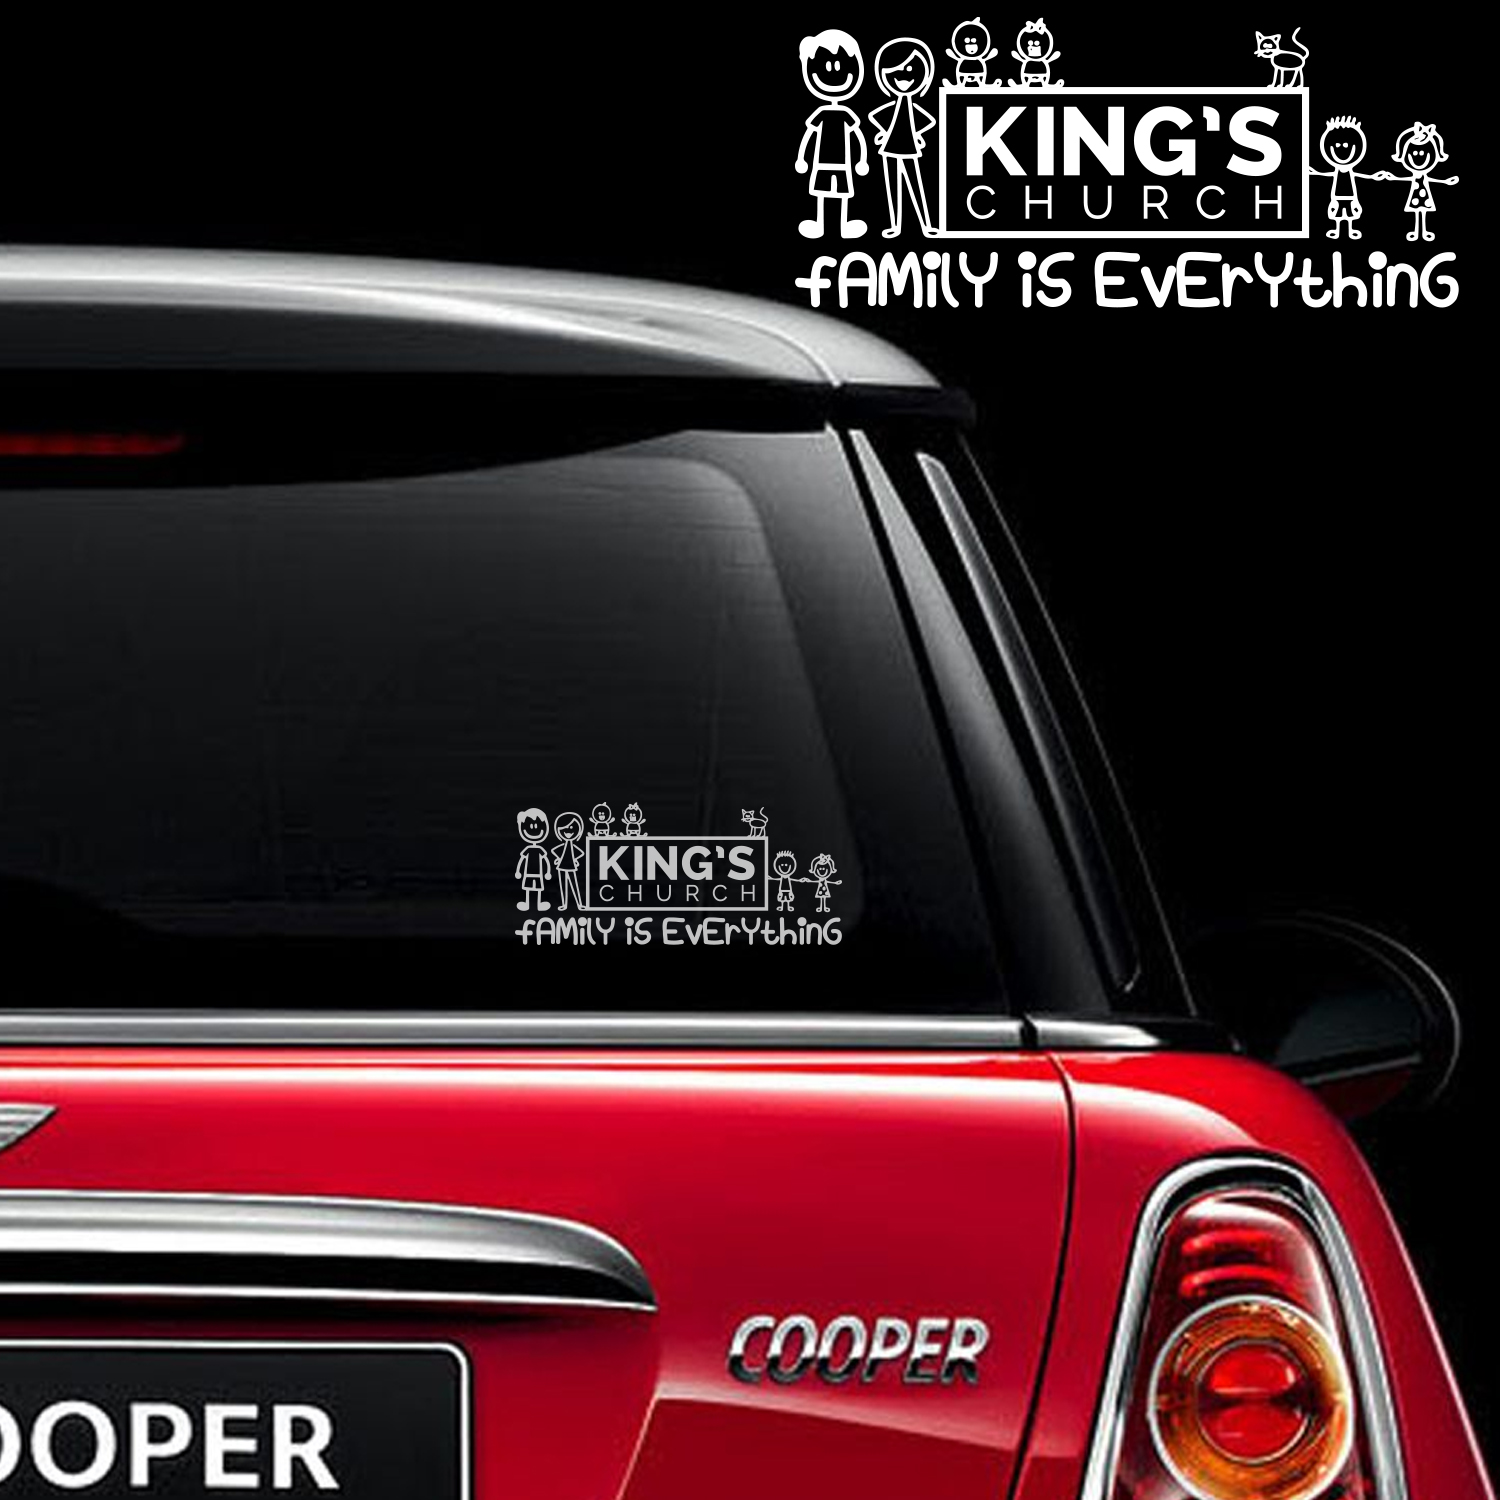 Sticker designs for car - My Church Family Rear Window Car Sticker